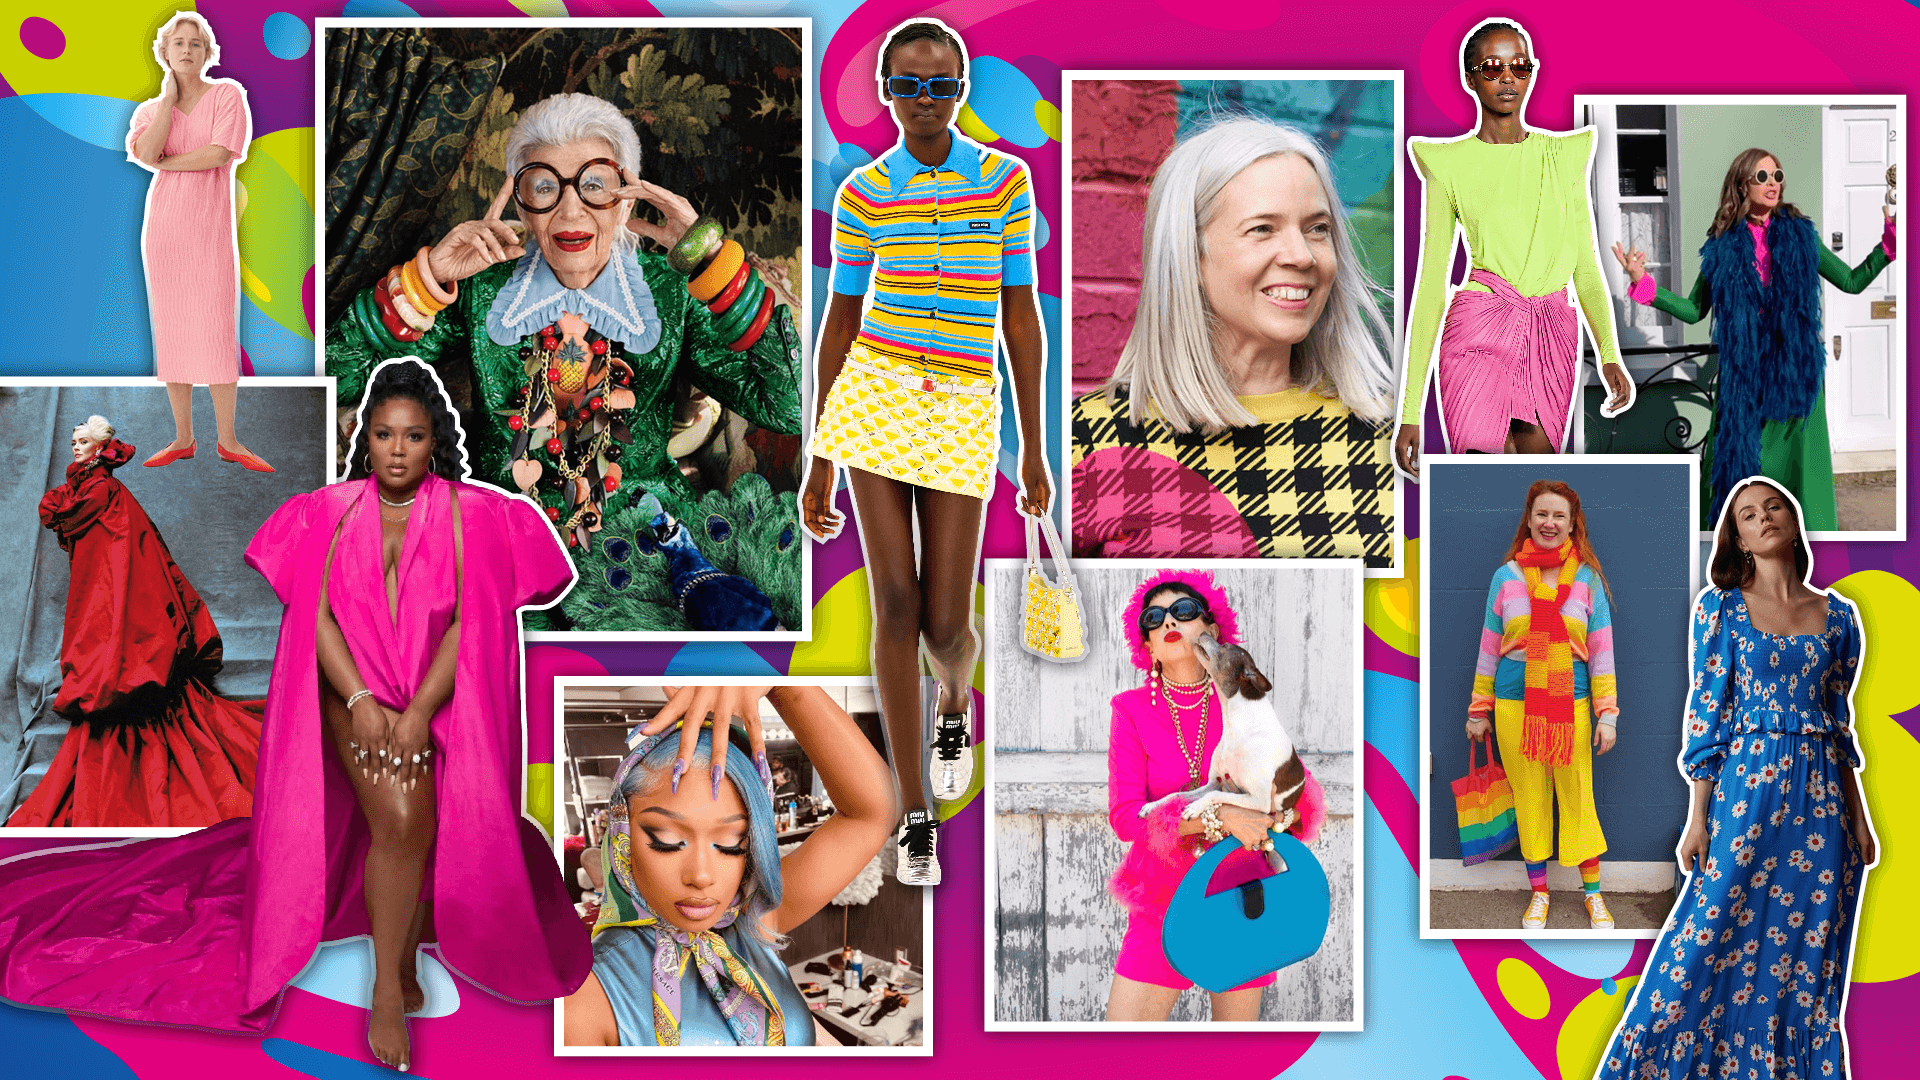 The women who celebrate individual style